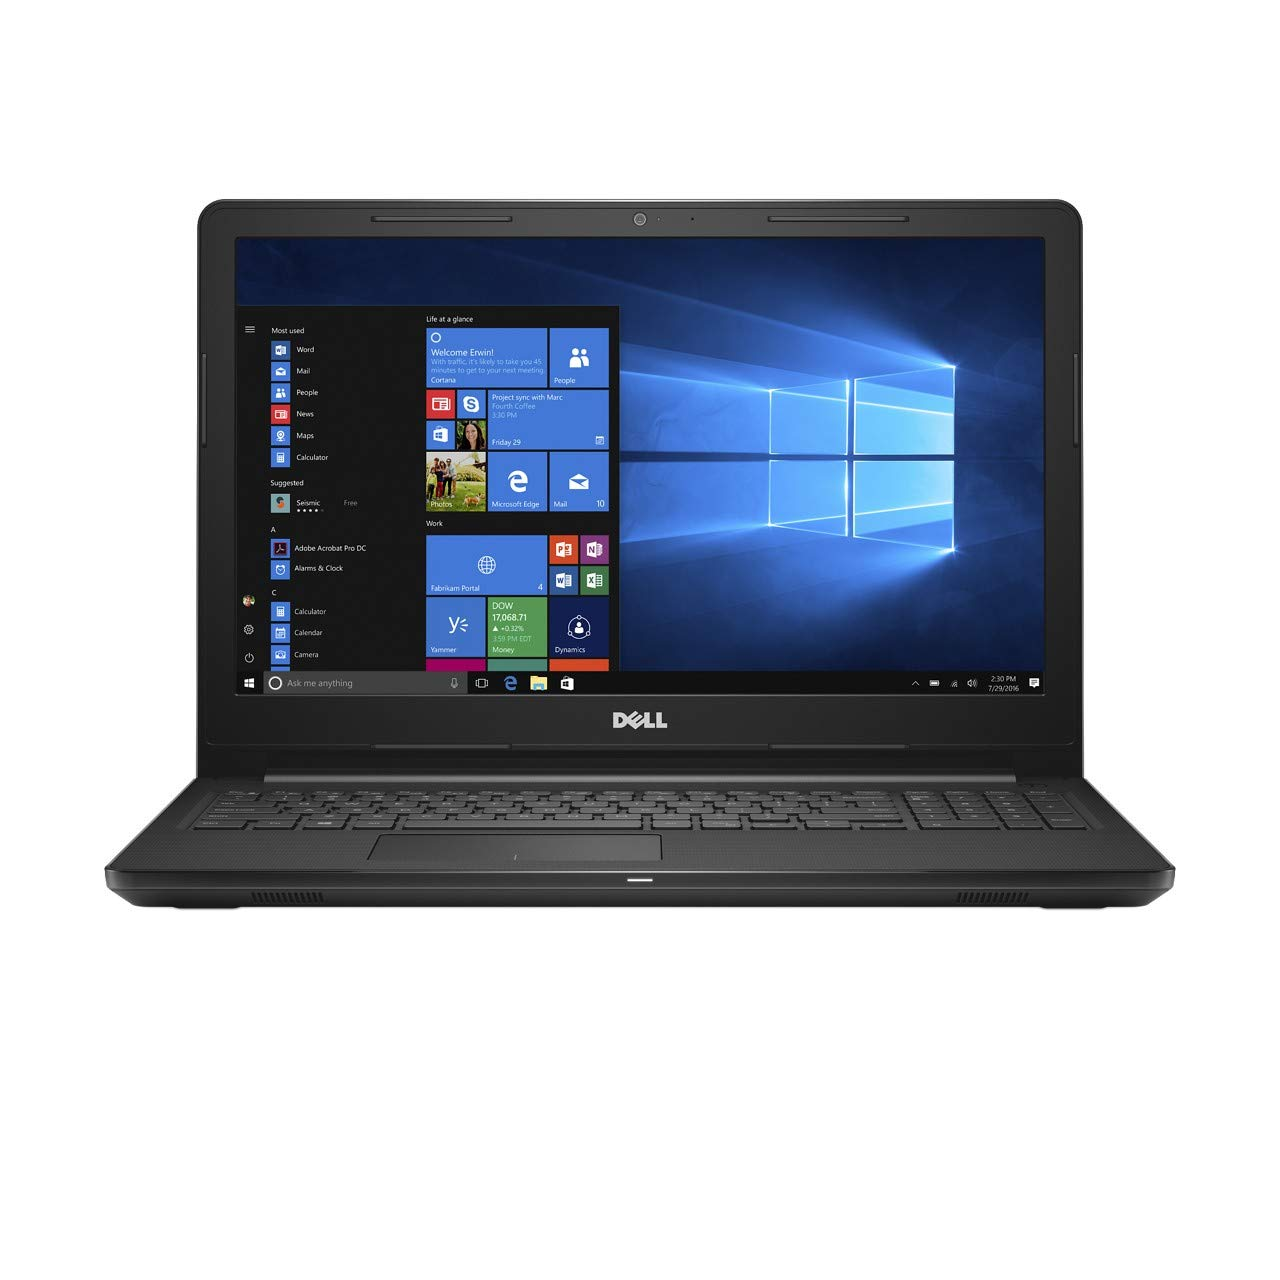 Buy Dell Inspiron 3565 AMD E2 7th Gen 15.6-inch Laptop (4GB 1TB HDD   Windows 10 Black 2.5kg) Online at Low Prices in India - Amazon.in 595fe317f